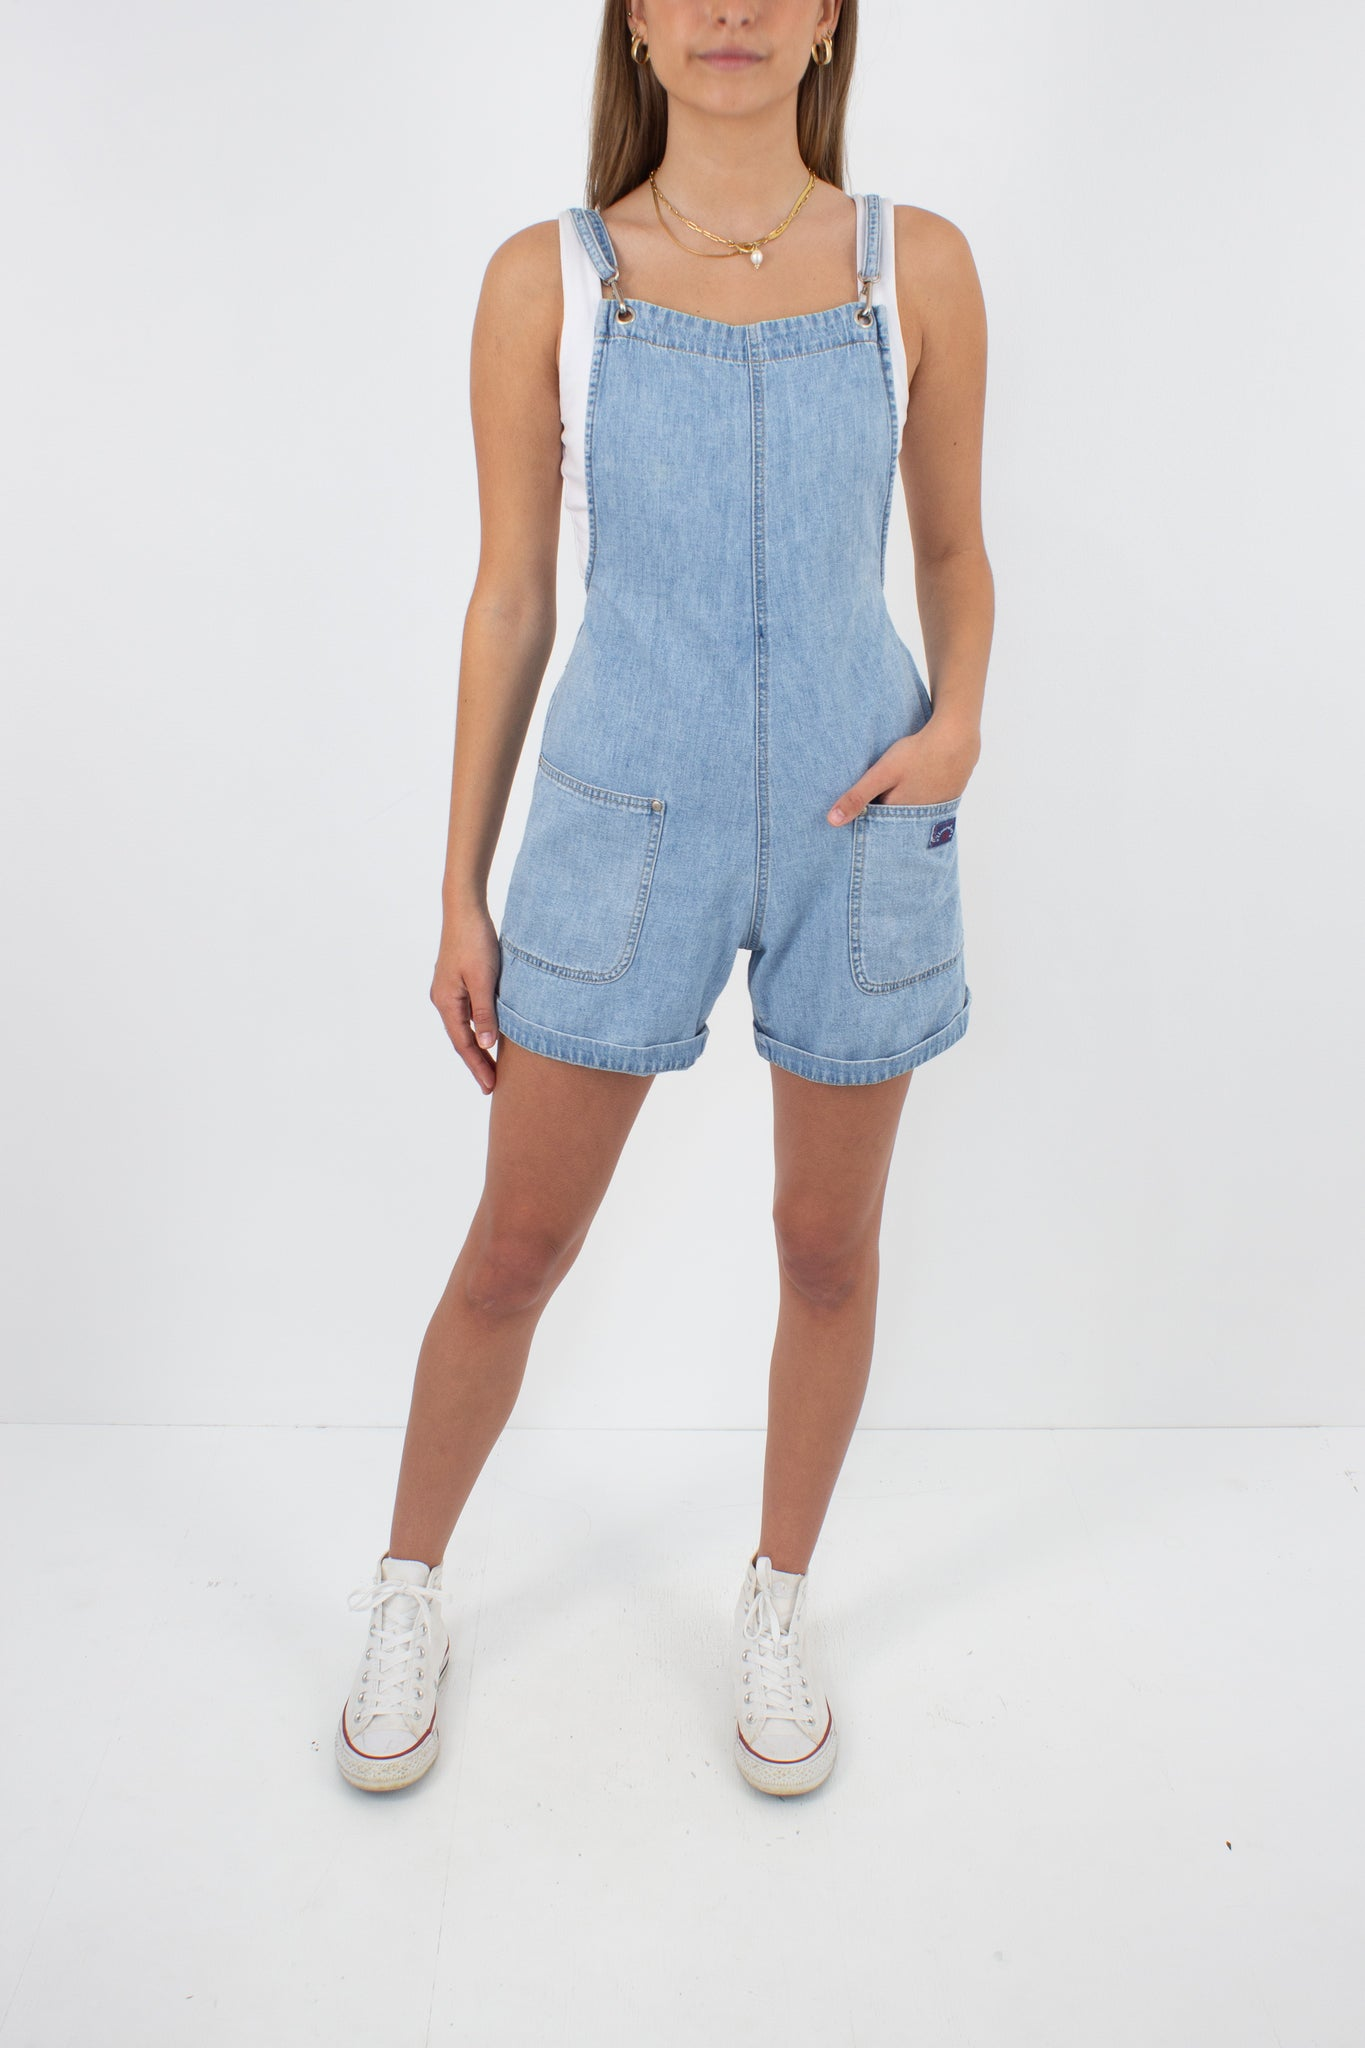 Backless Light Blue Denim Overalls Playsuit - Size S